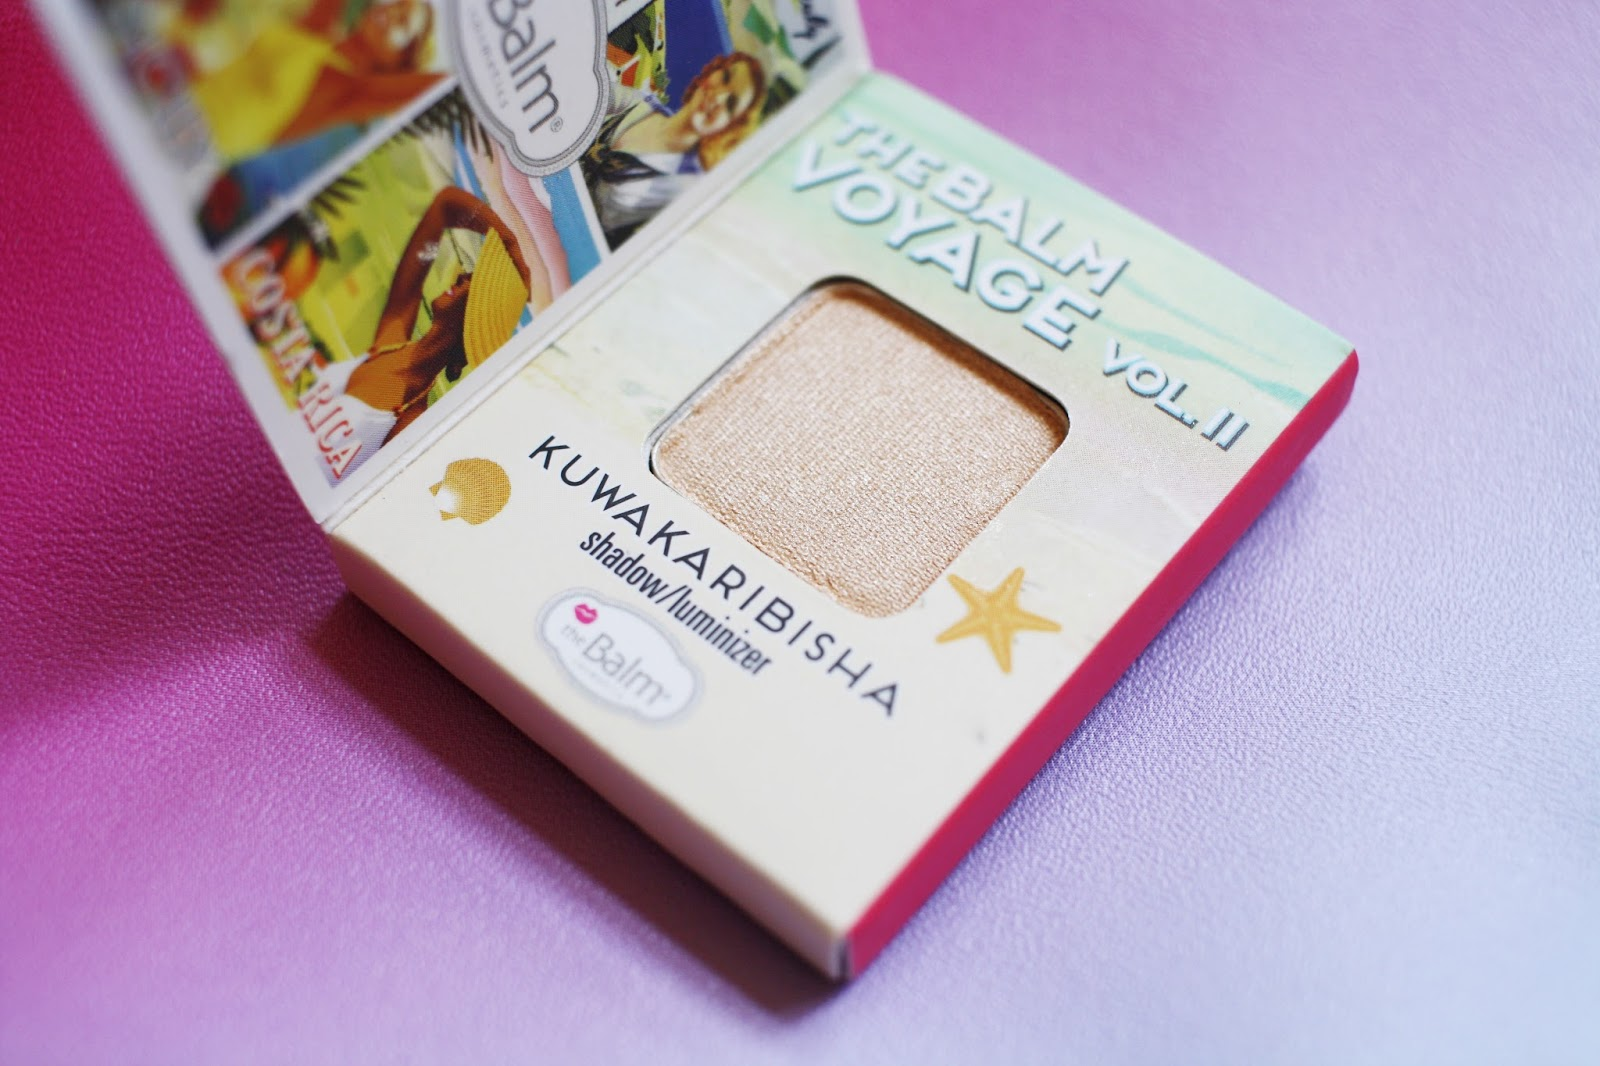 theBalm Cosmetics Voyage 2 Palette